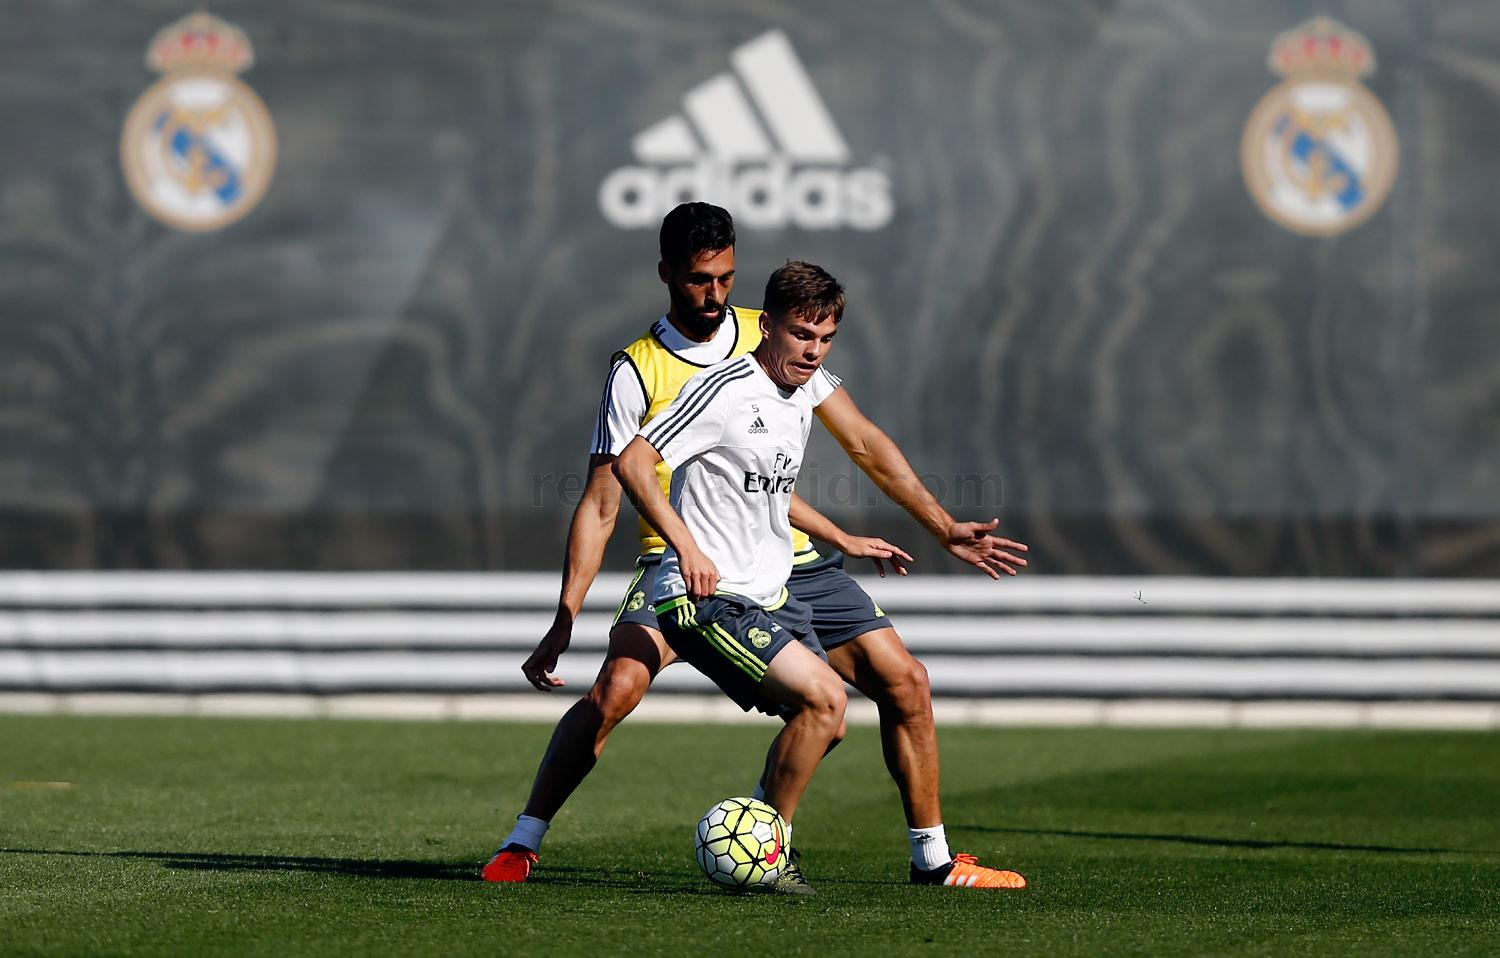 Real Madrid - Entrenamiento del Real Madrid - 08-10-2015